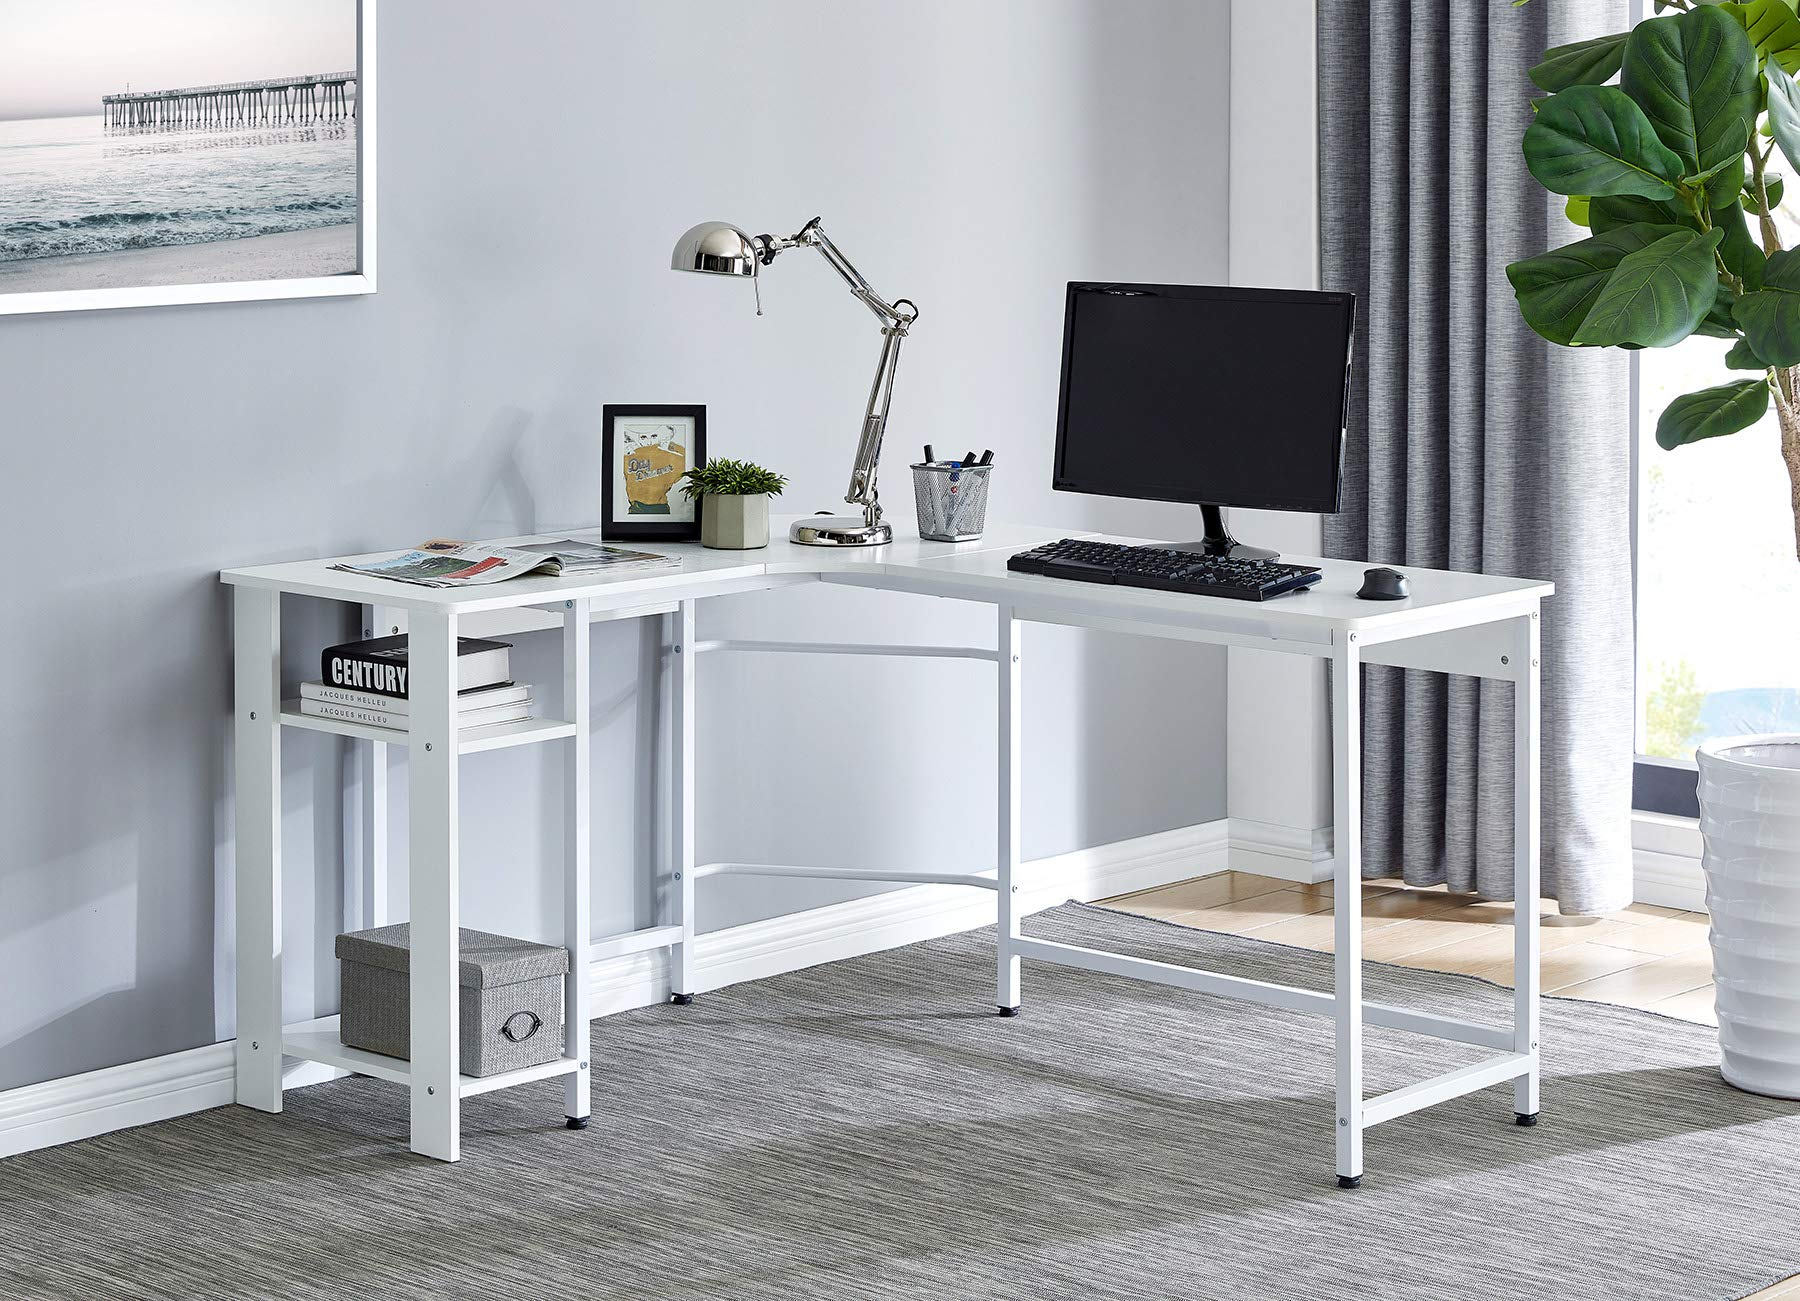 Fineboard FB-LD20-WW Home Office L Shaped Computer Desk with 2 Shelves, White by Fineboard